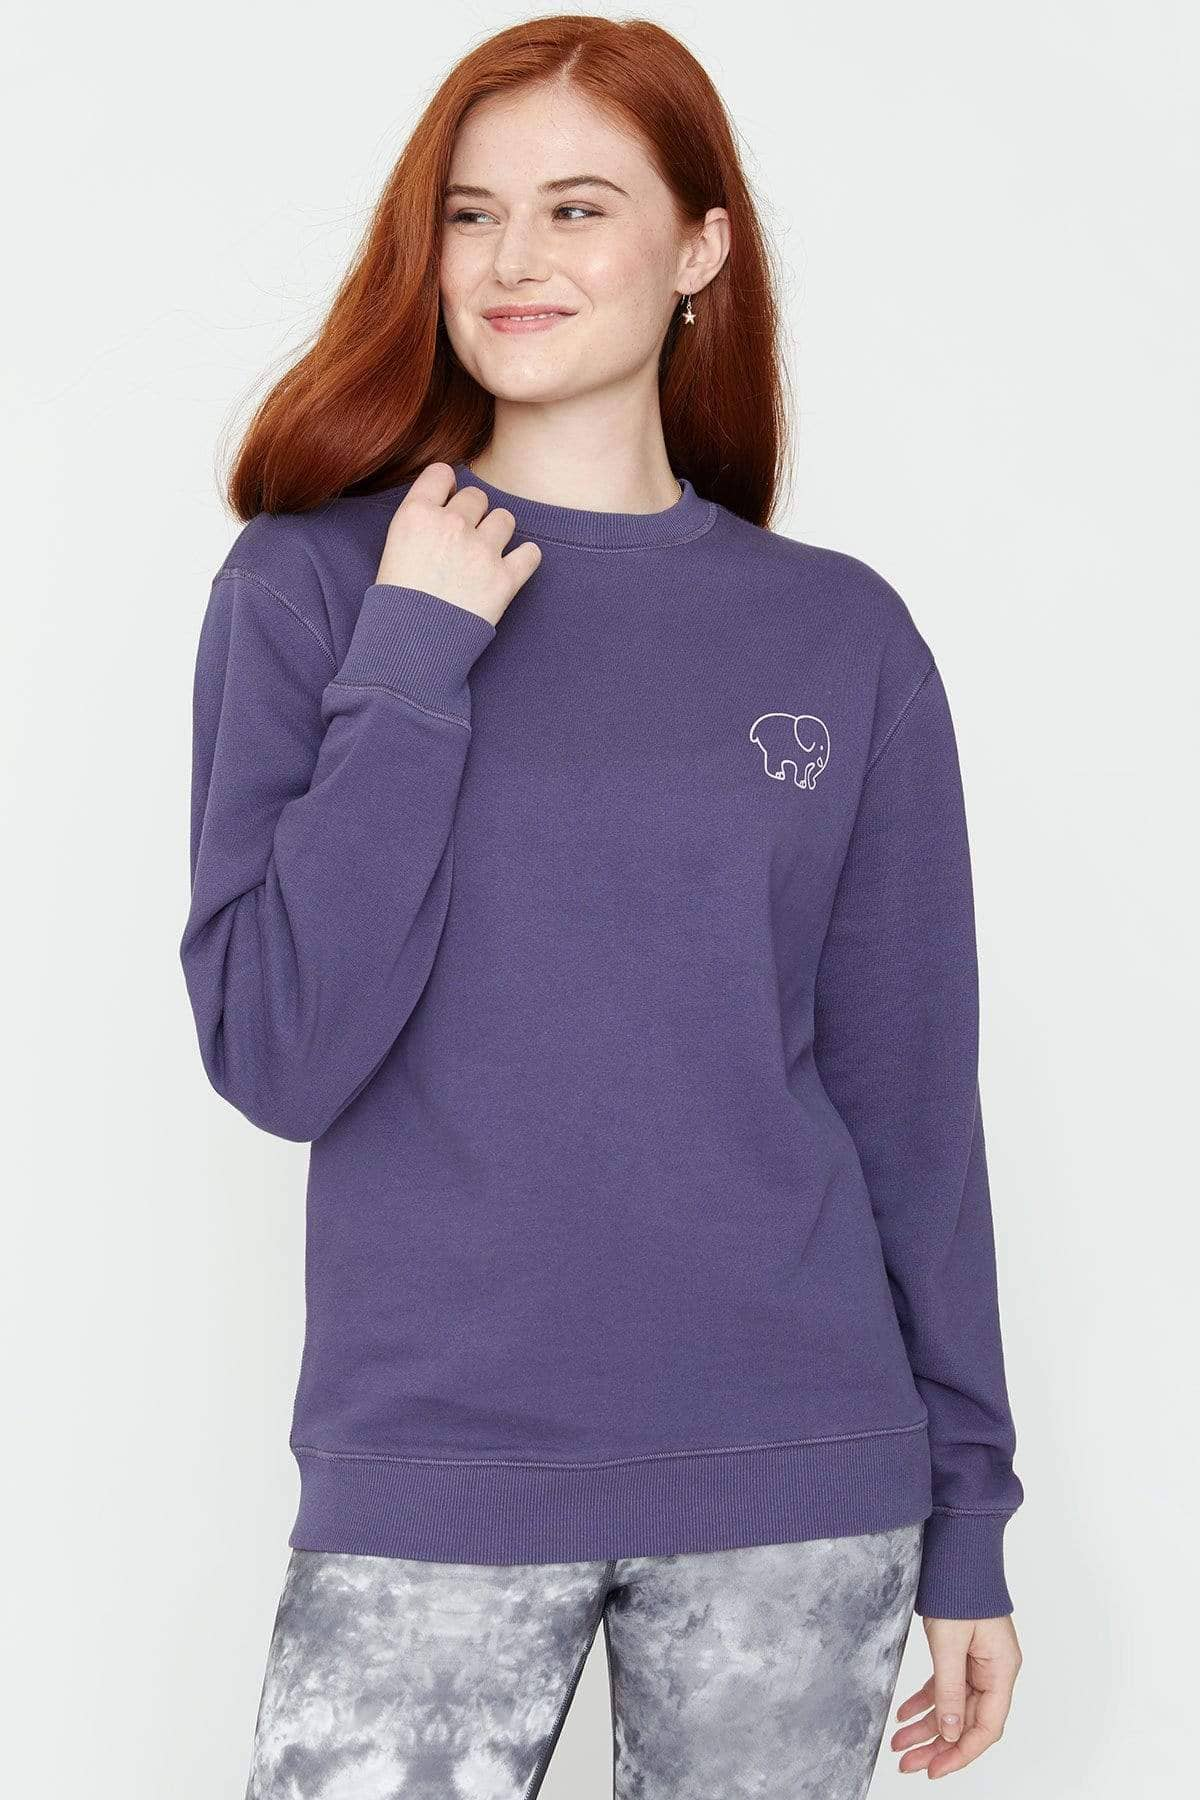 Graystone Washed Crew - Ivory Ella - Women's Sweatshirts